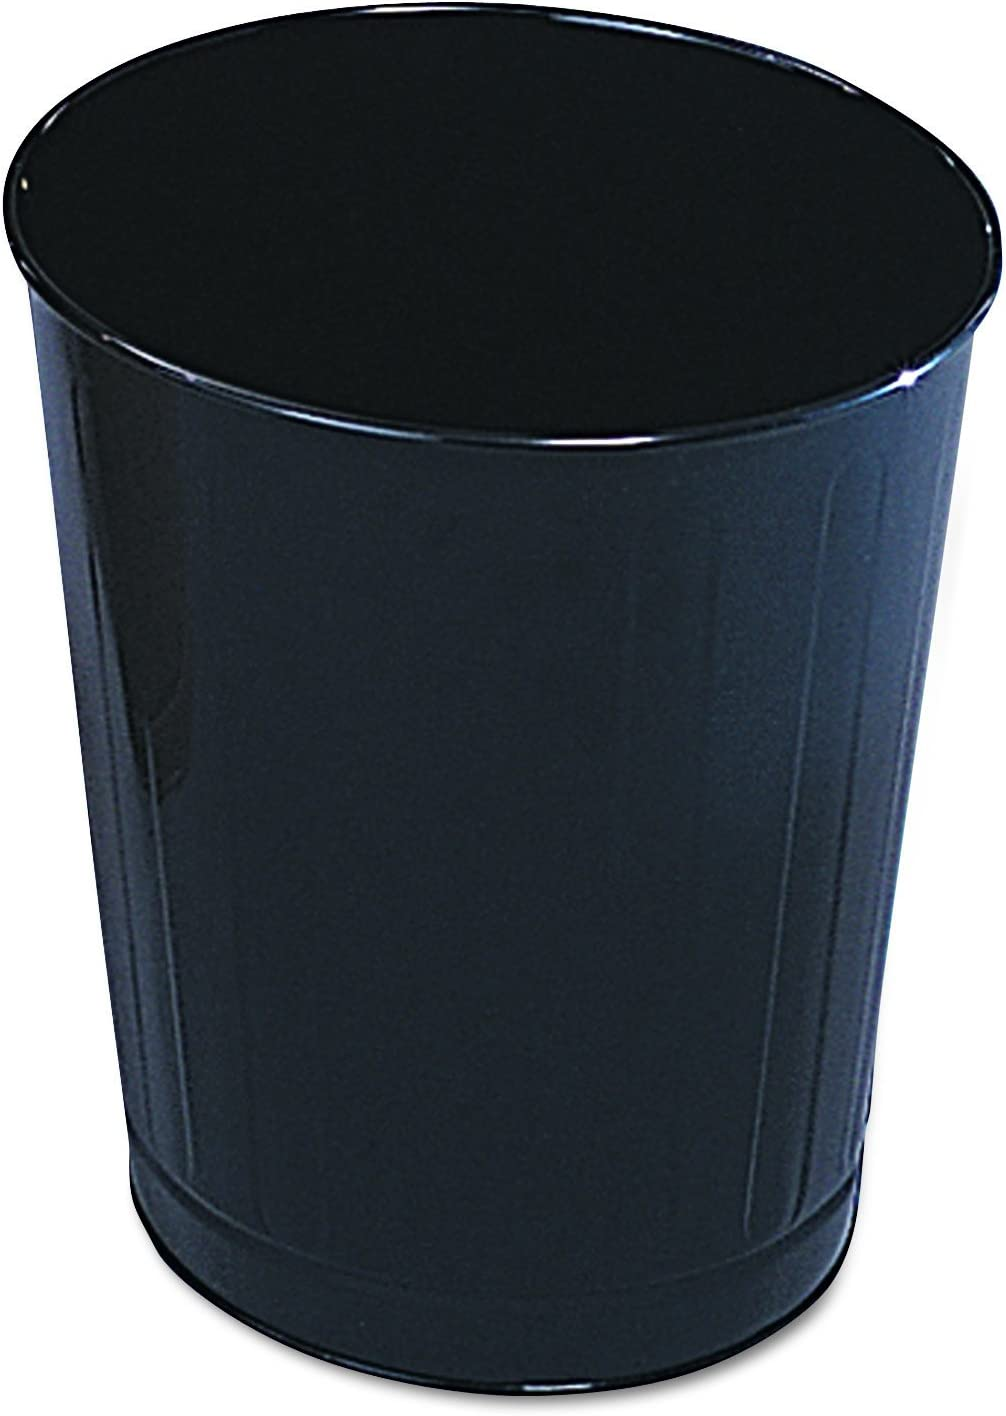 Rubbermaid Commercial WB26BK Fire-Safe Wastebasket, Round, Steel, 6 1/2 gal, Black